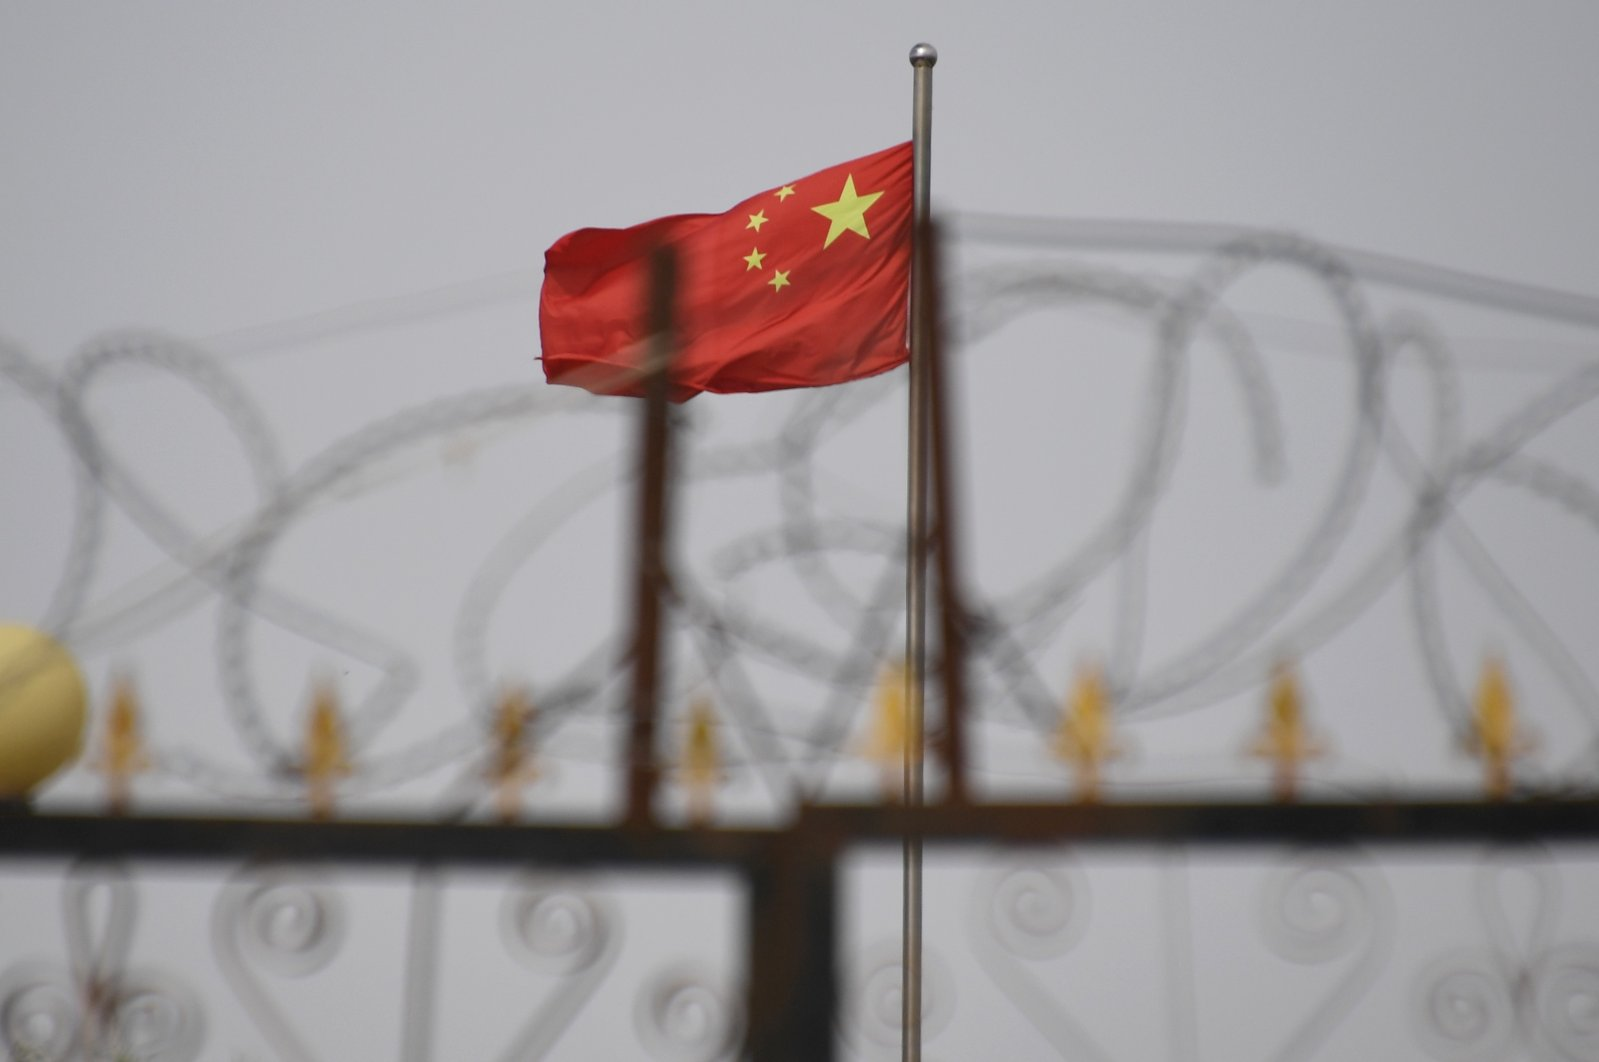 This file photo taken on June 4, 2019, shows the Chinese flag behind razor wire at a housing compound in Yangisar, south of Kashgar, in China's western Xinjiang region. (AFP Photo)